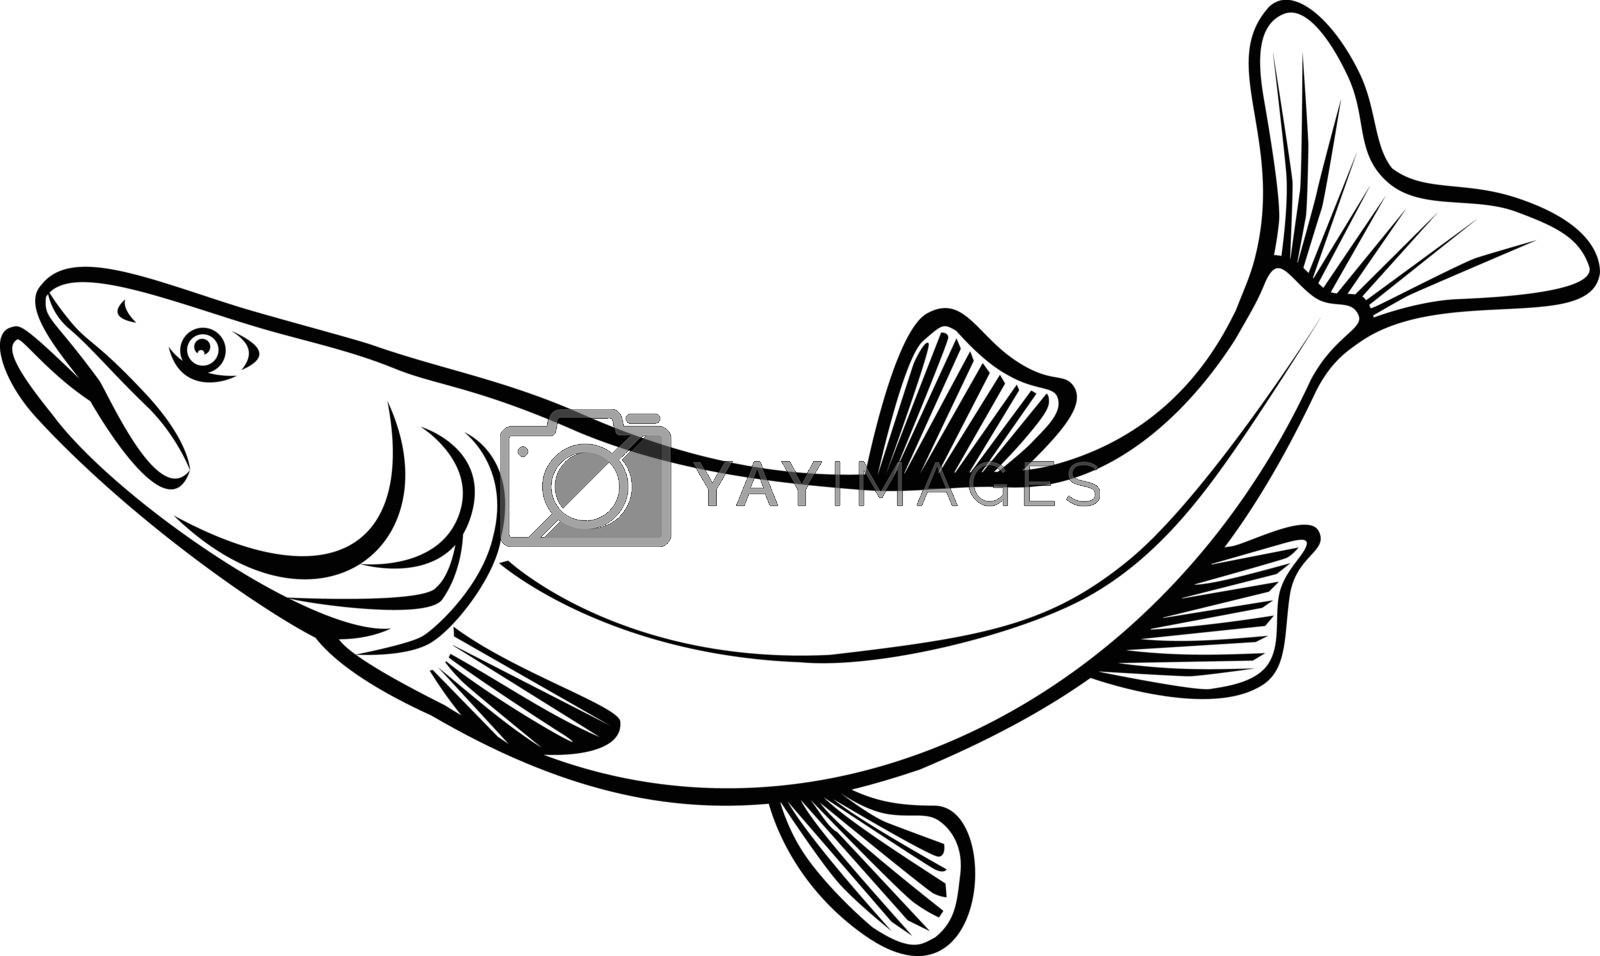 Retro style illustration of a Colorado pikeminnow, Ptychocheilus lucius or Colorado squawfish, a large minnow native to the Colorado River leaping on isolated background done in black and white.